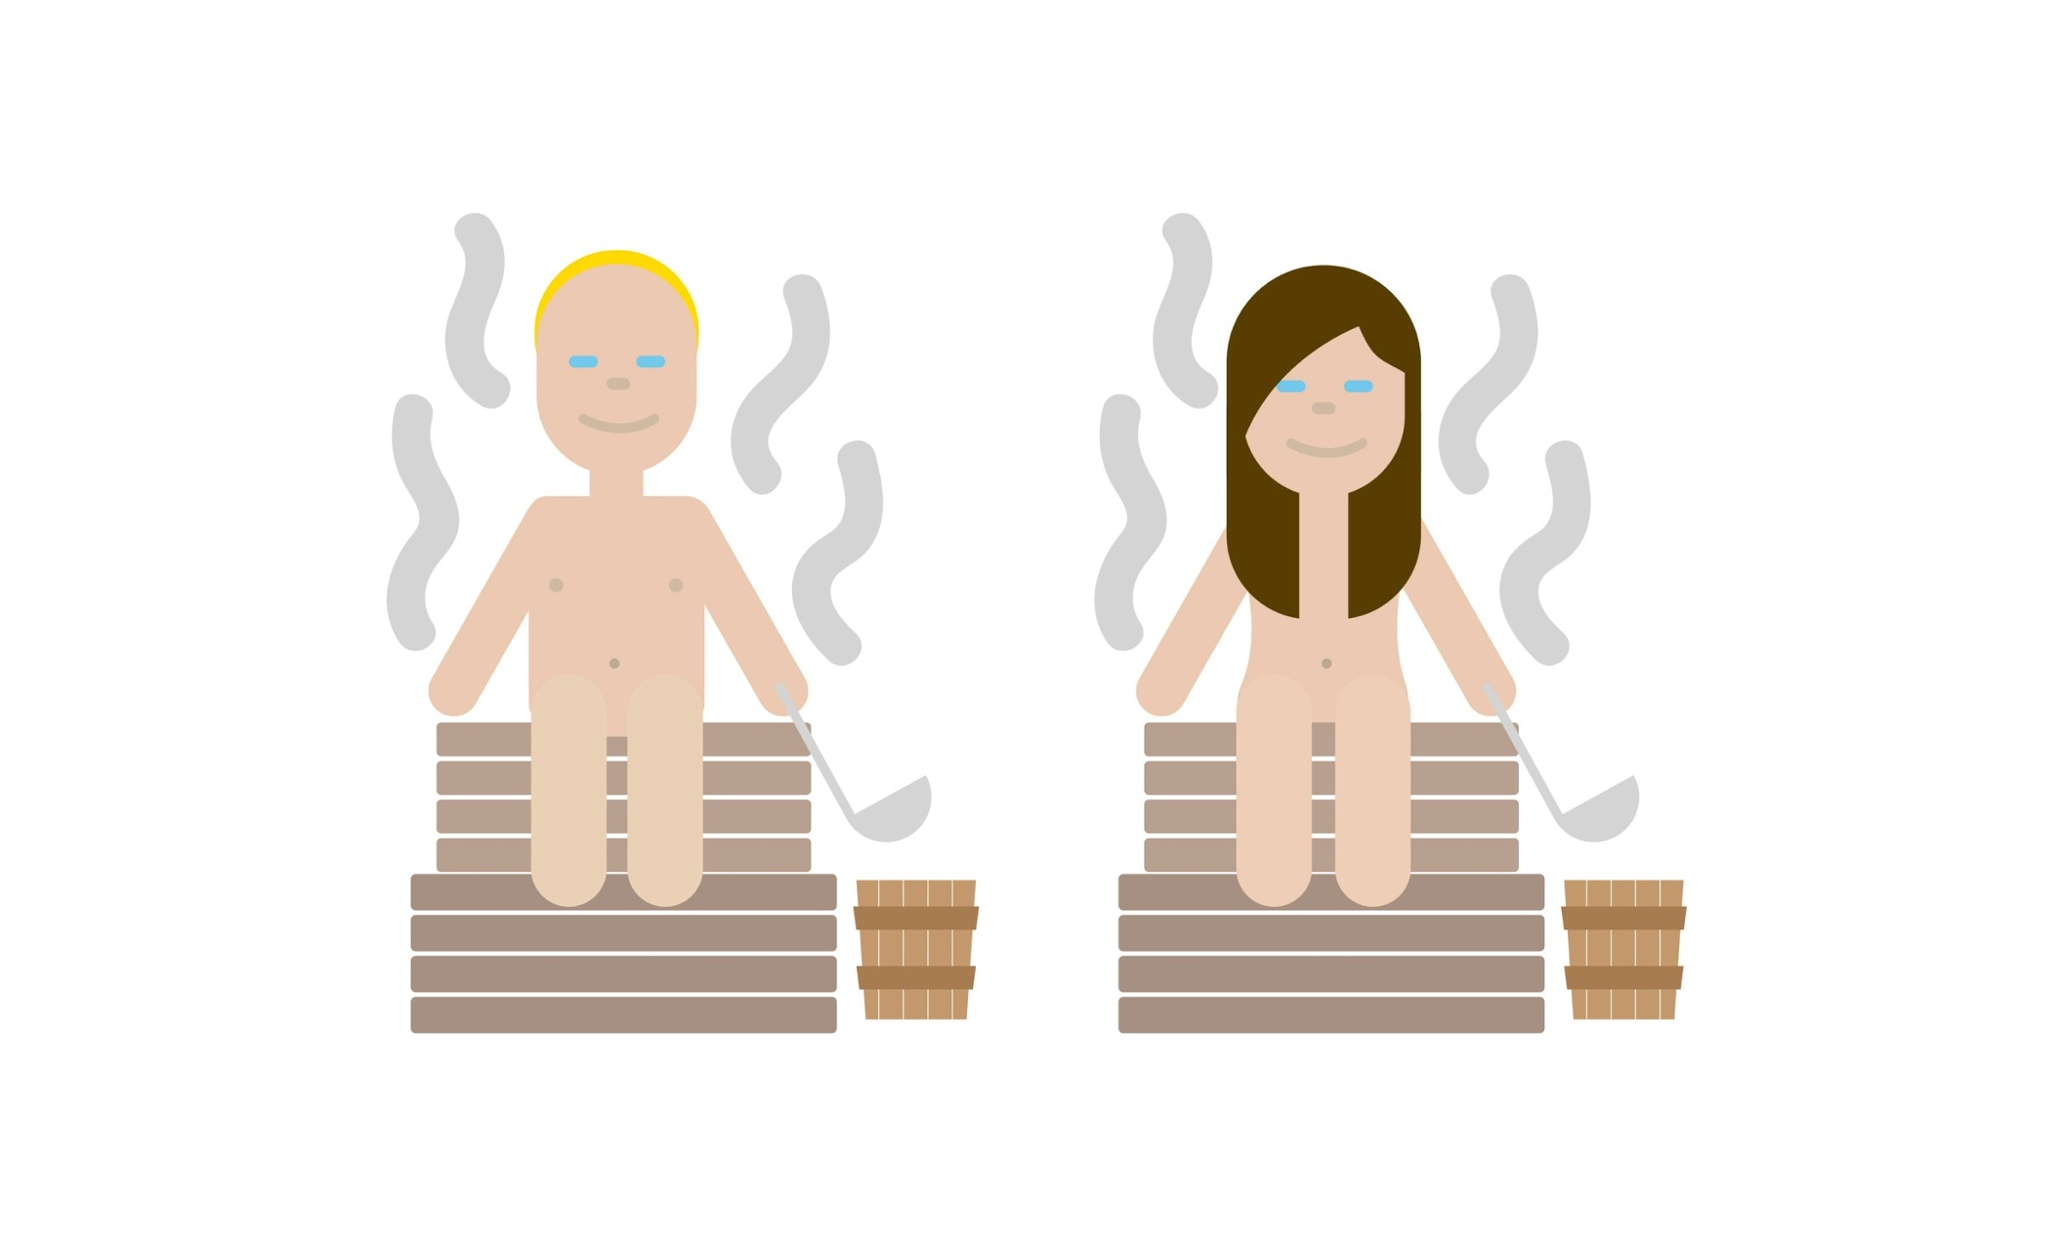 Conversations from the Sauna: On Privacy, Openness, Nudity, and Coming Together - The Politics